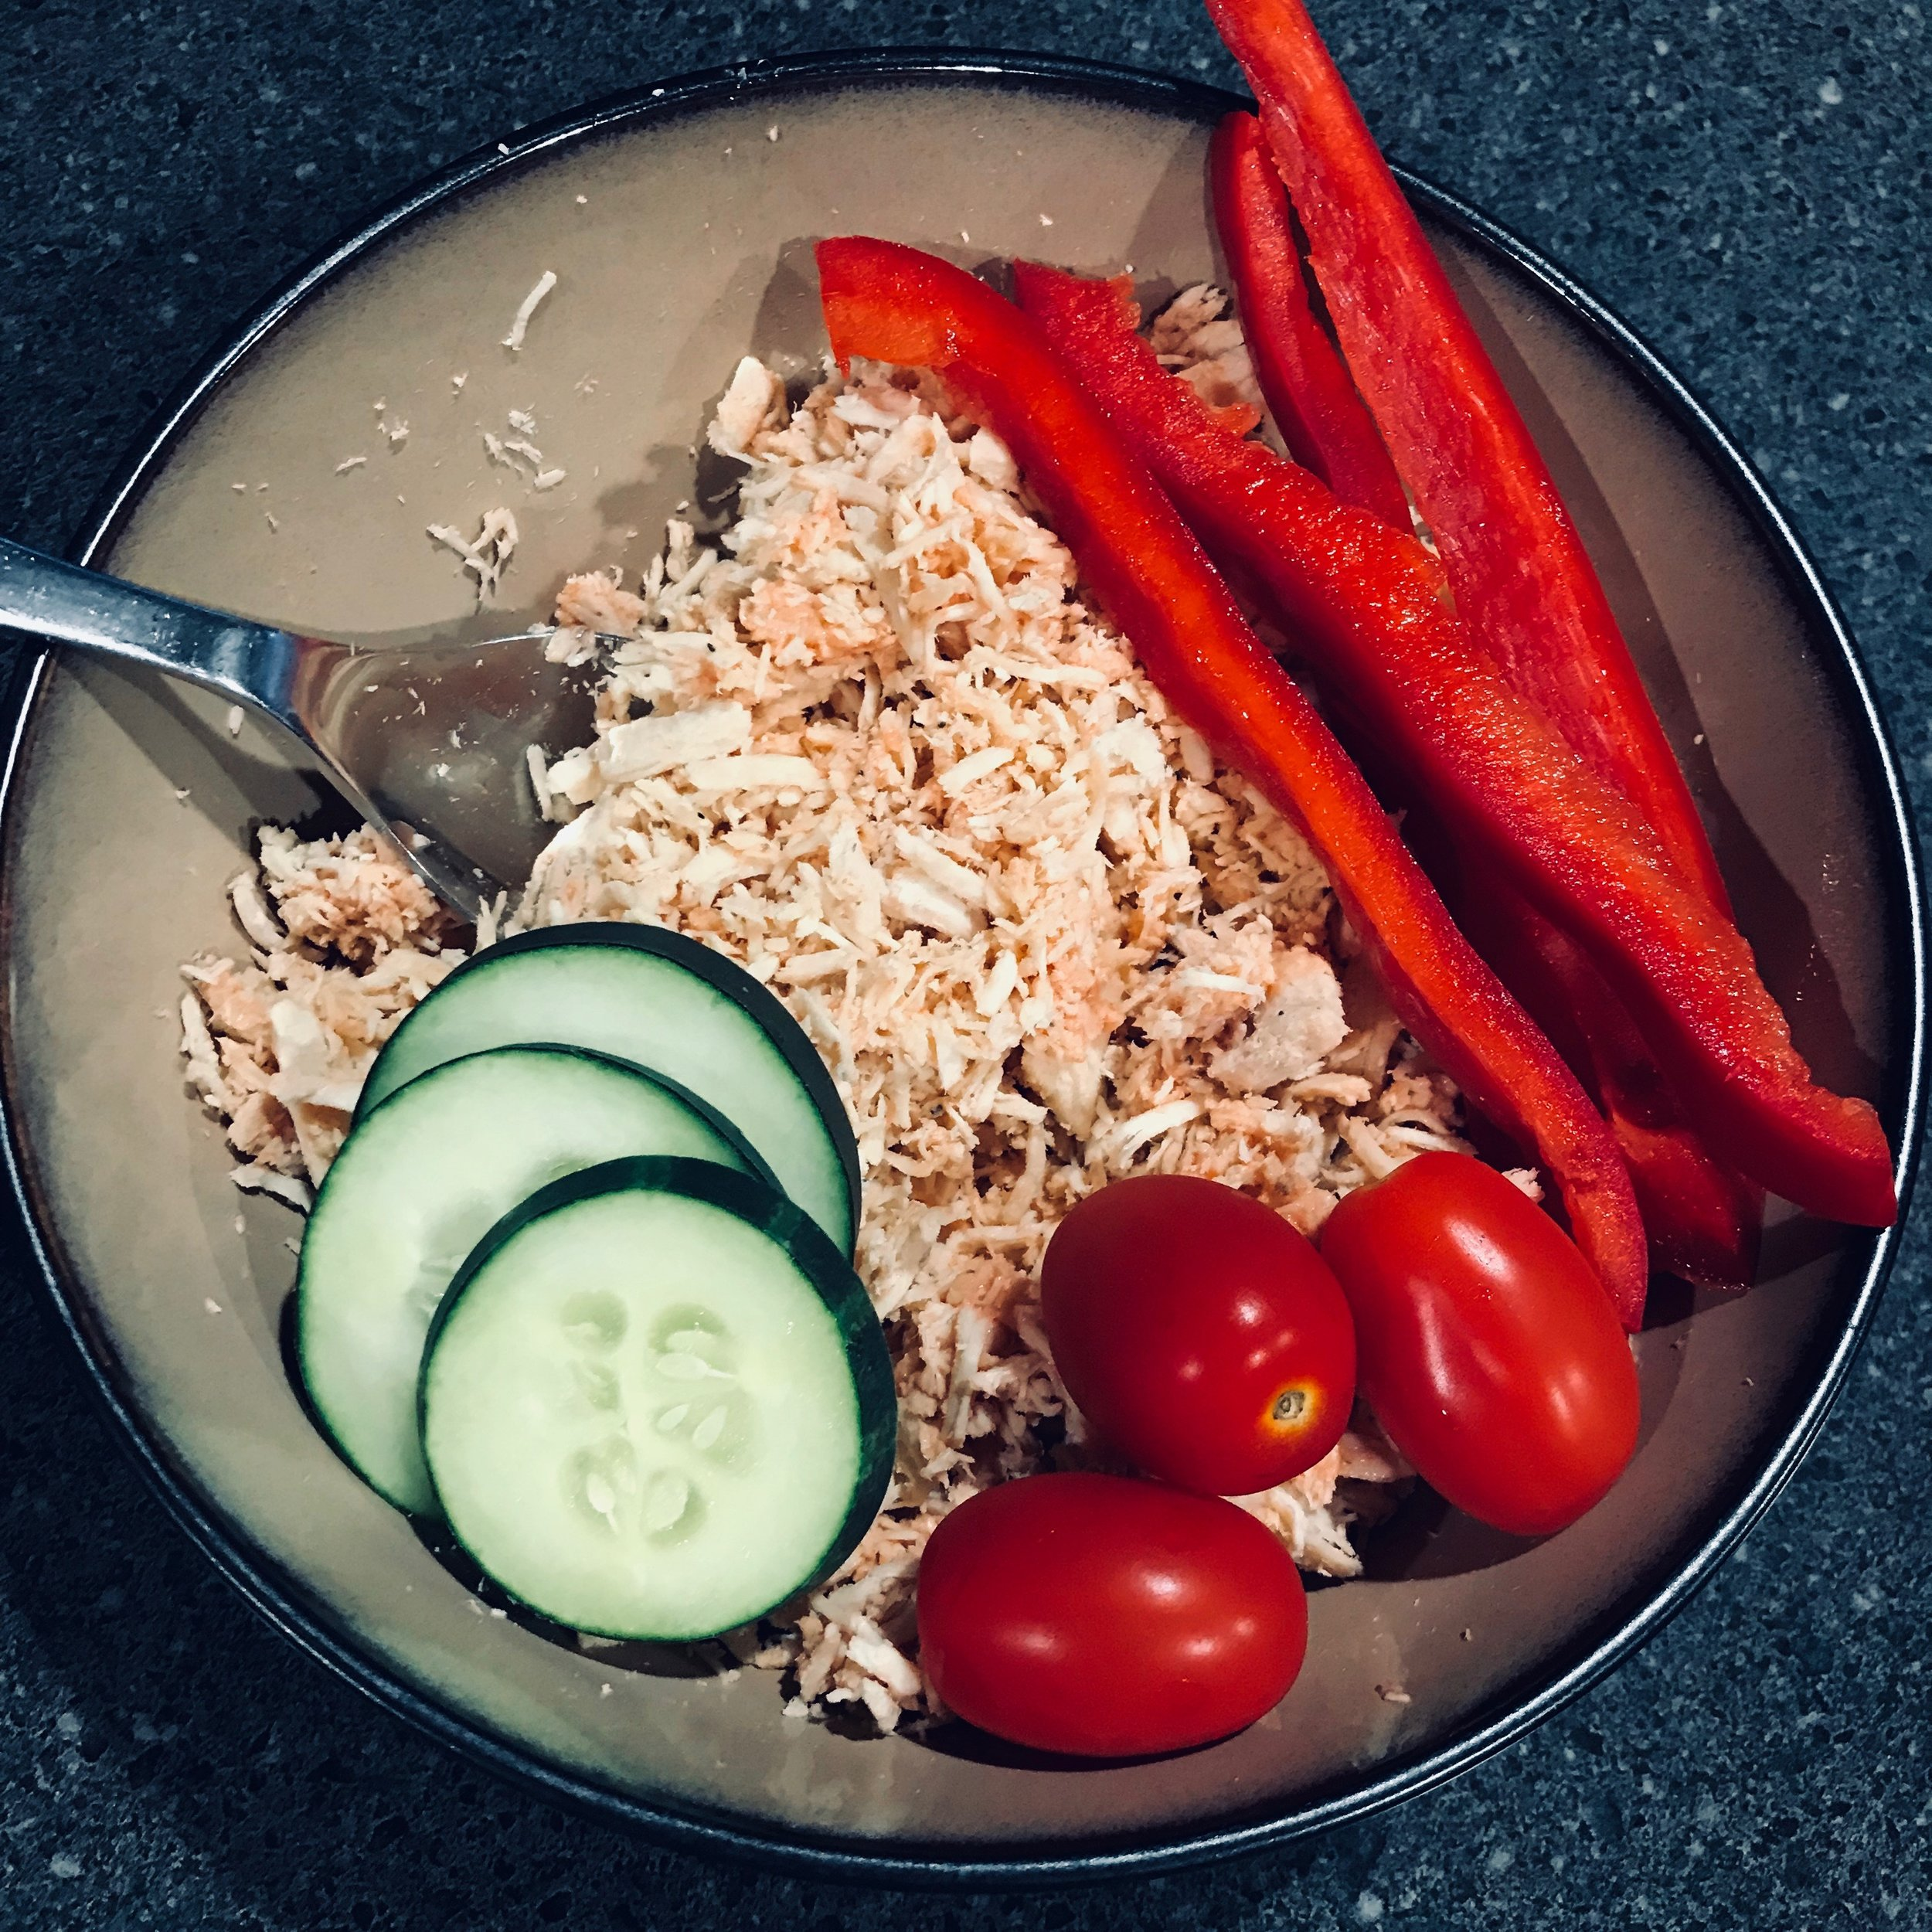 Shredded chicken + a few drops of Frank's Red Hot sauce, cherry tomatoes, red peppers, cucumbers.